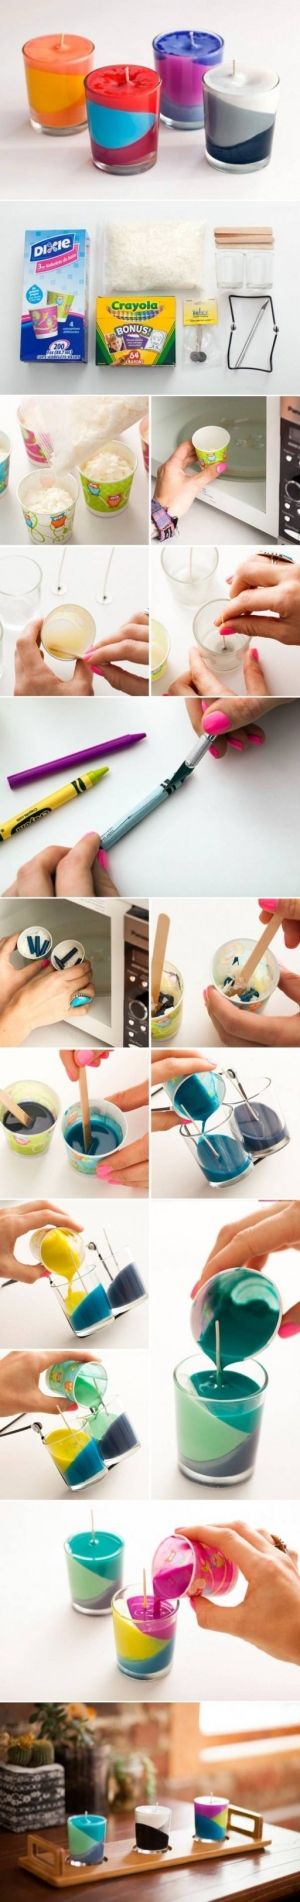 How to make Multi Color Candle step by step DIY tutorial instructions, How to, how to do, diy instructions, crafts, do it yourself, diy webs...